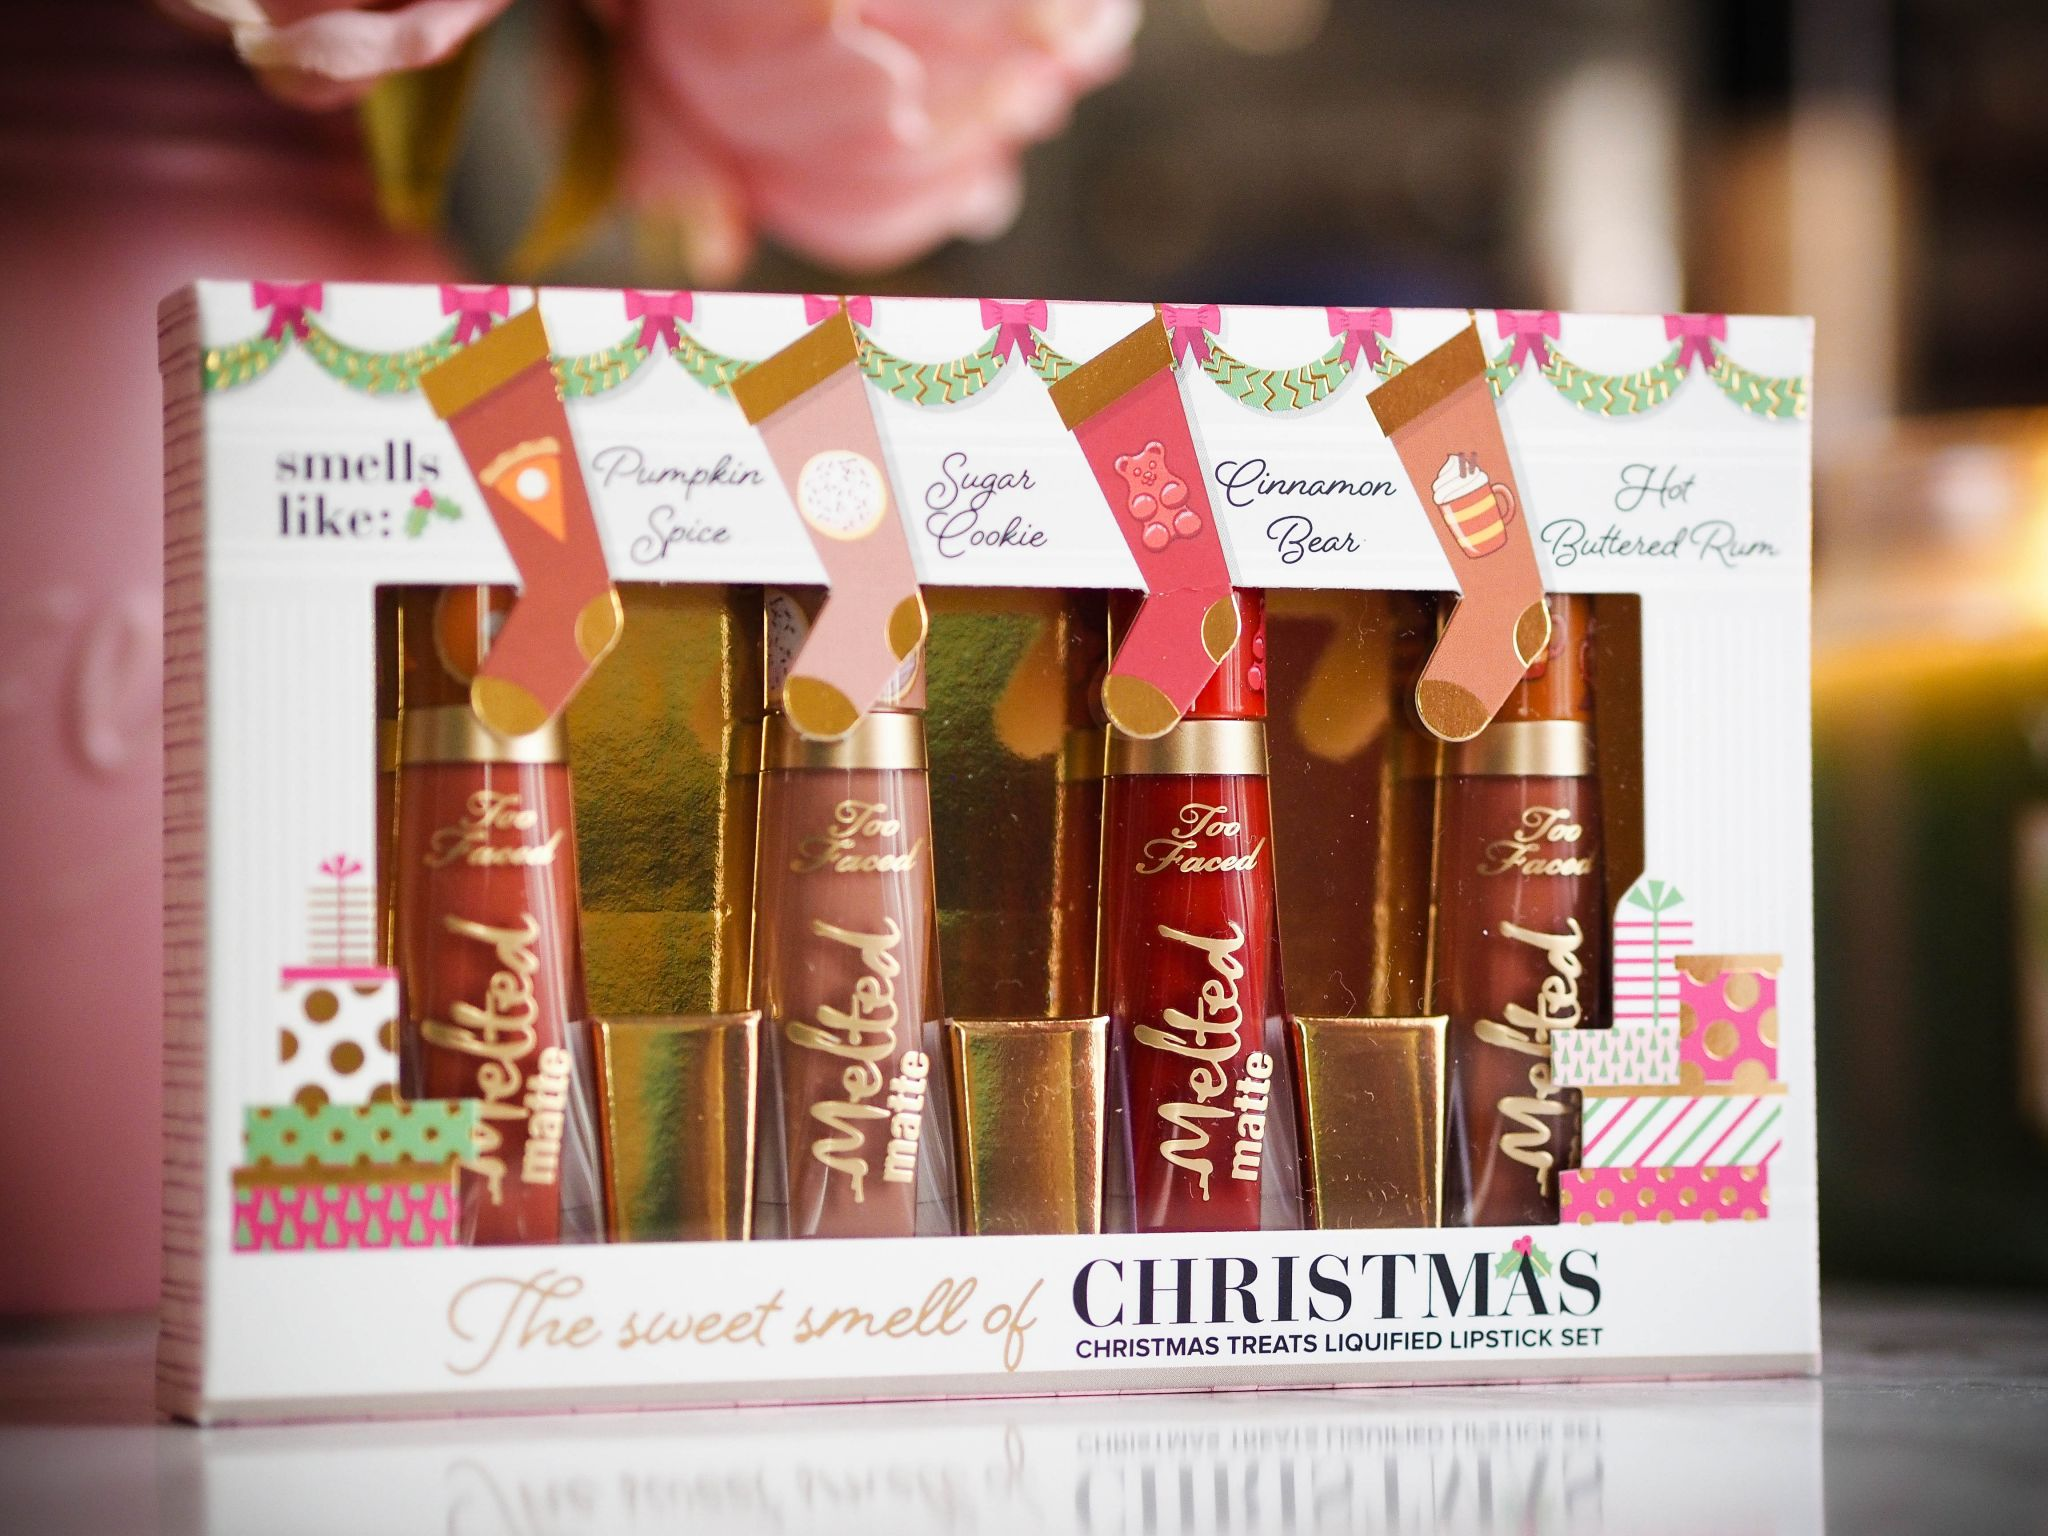 Too Faced Christmas Gift Set